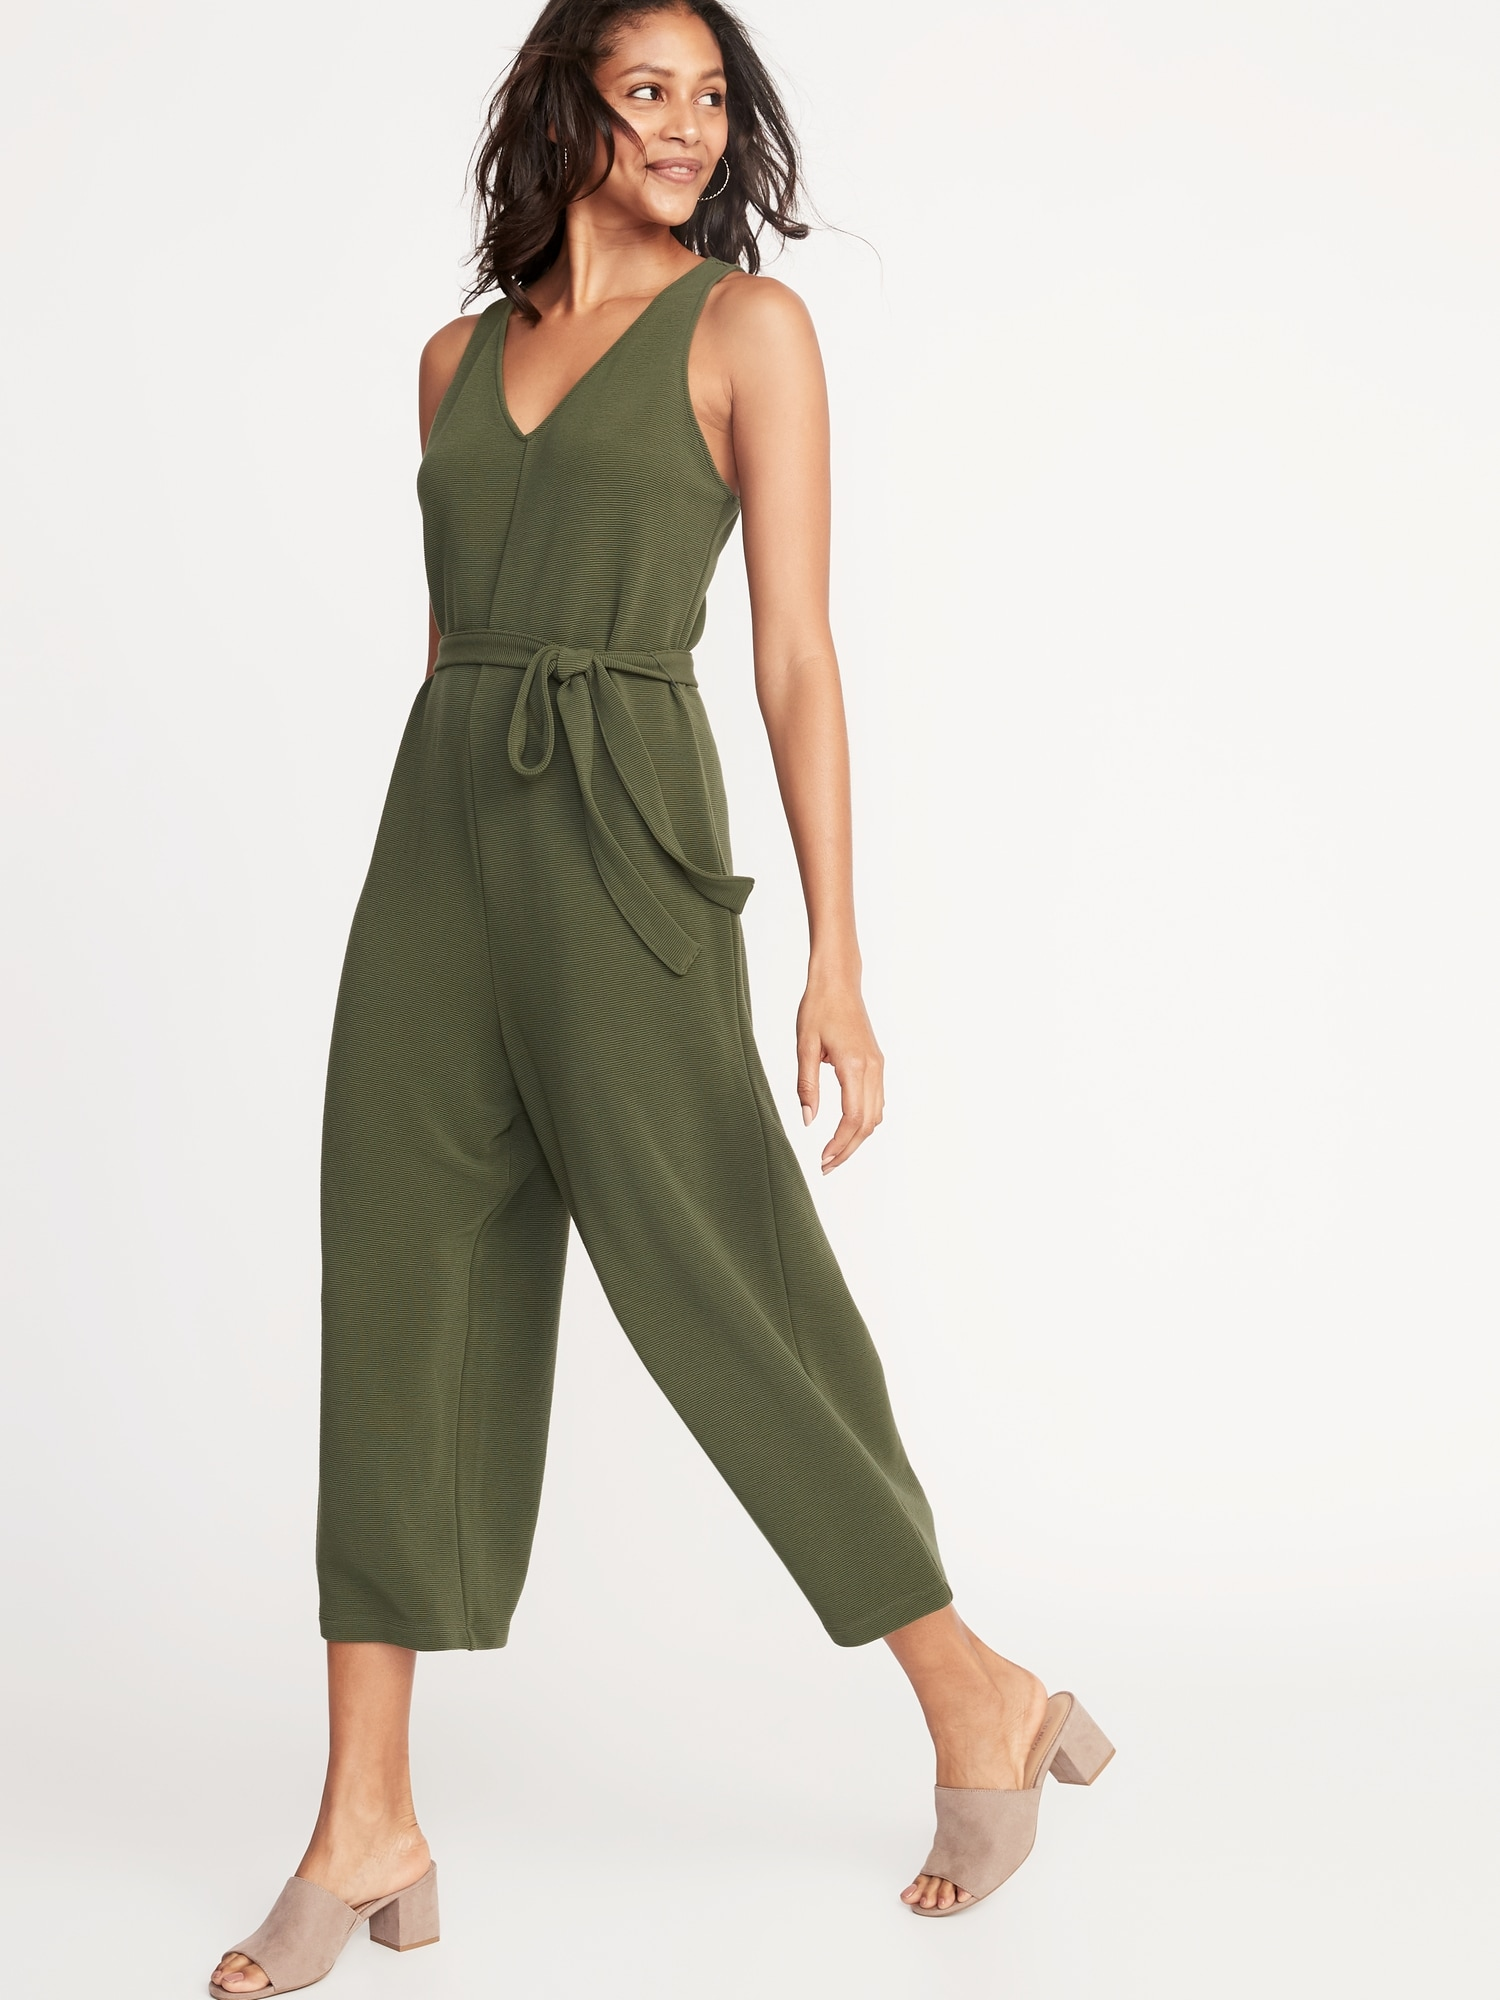 839ac743e77 Textured Ponte-Knit Tie-Belt Jumpsuit for Women